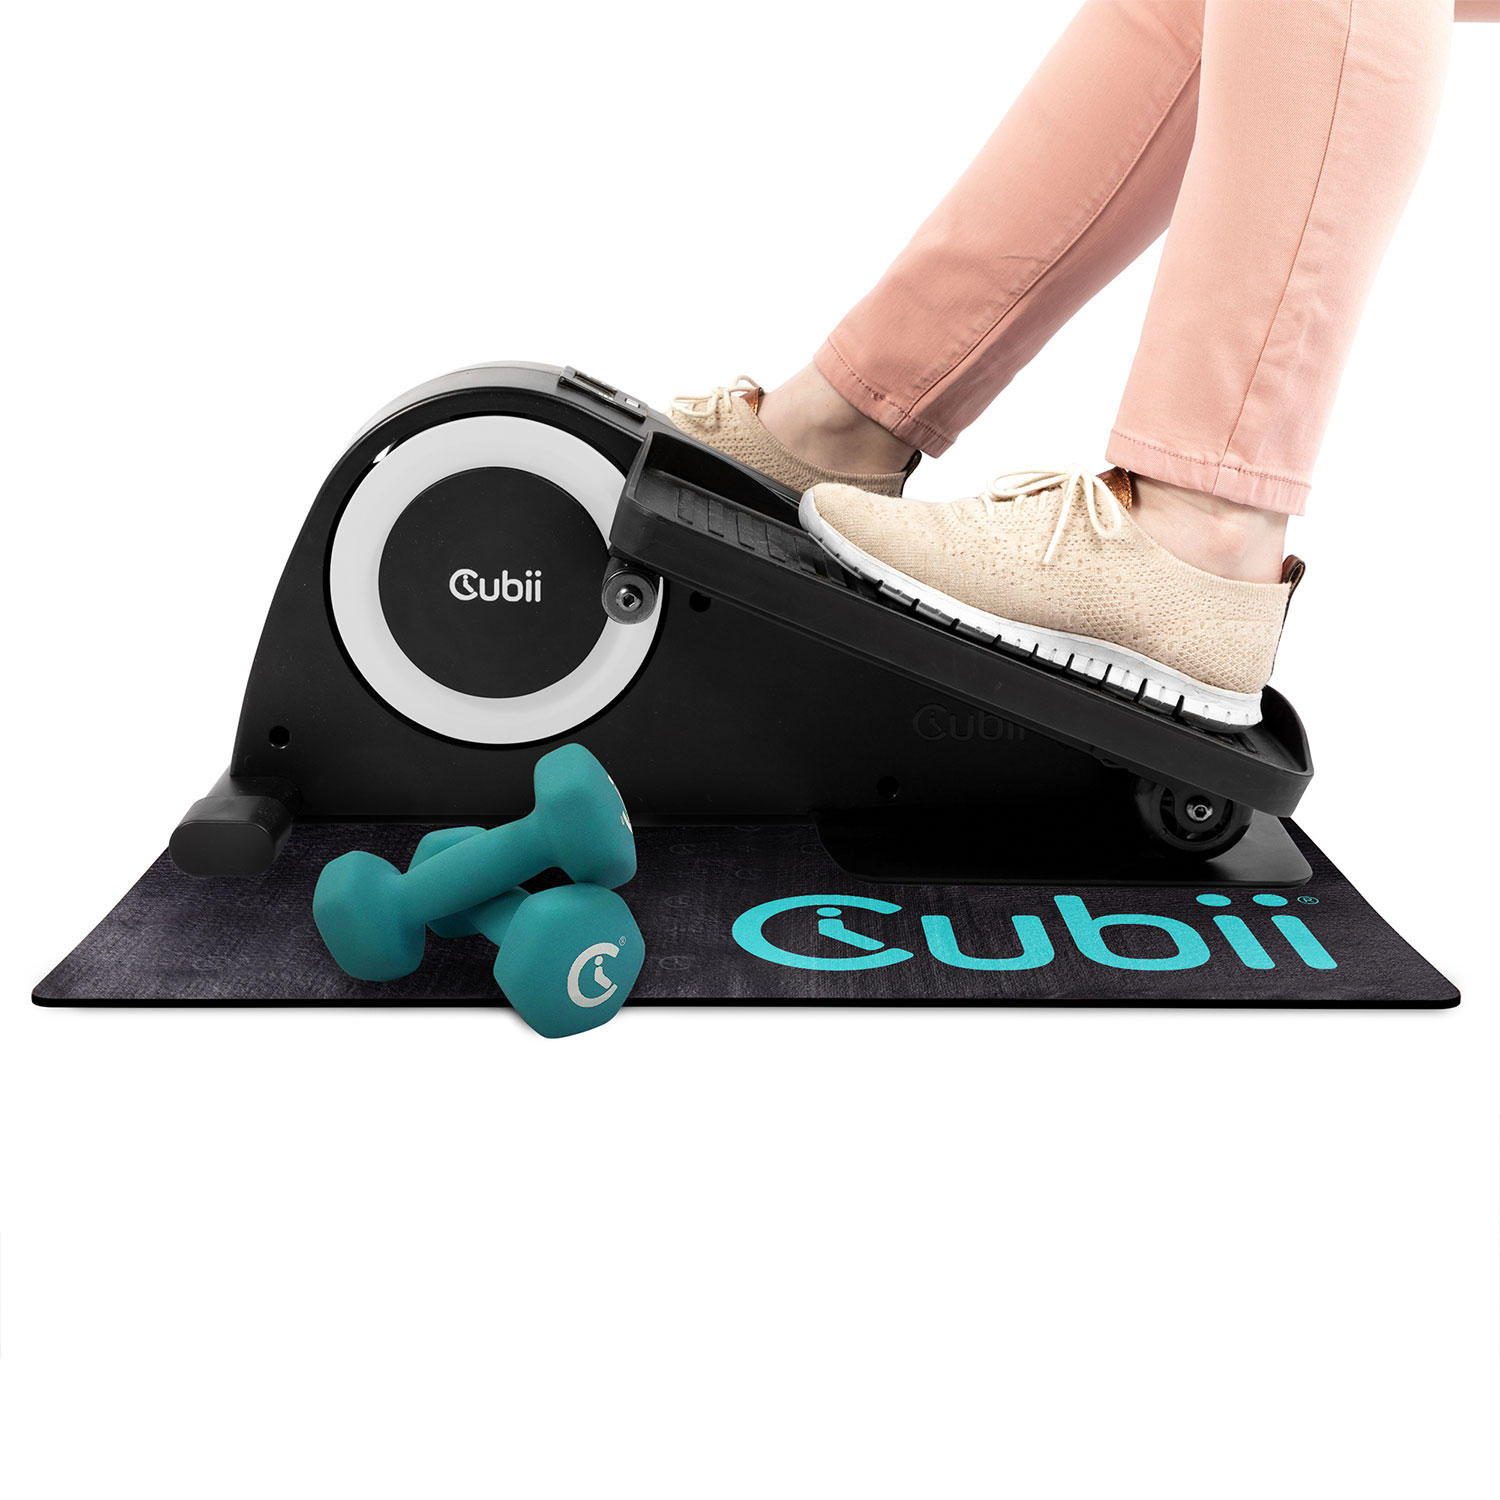 Cubii JR1 Compact Seated Elliptical Starter Set with 3 lb. Dumbbells, Gripii Workout Mat